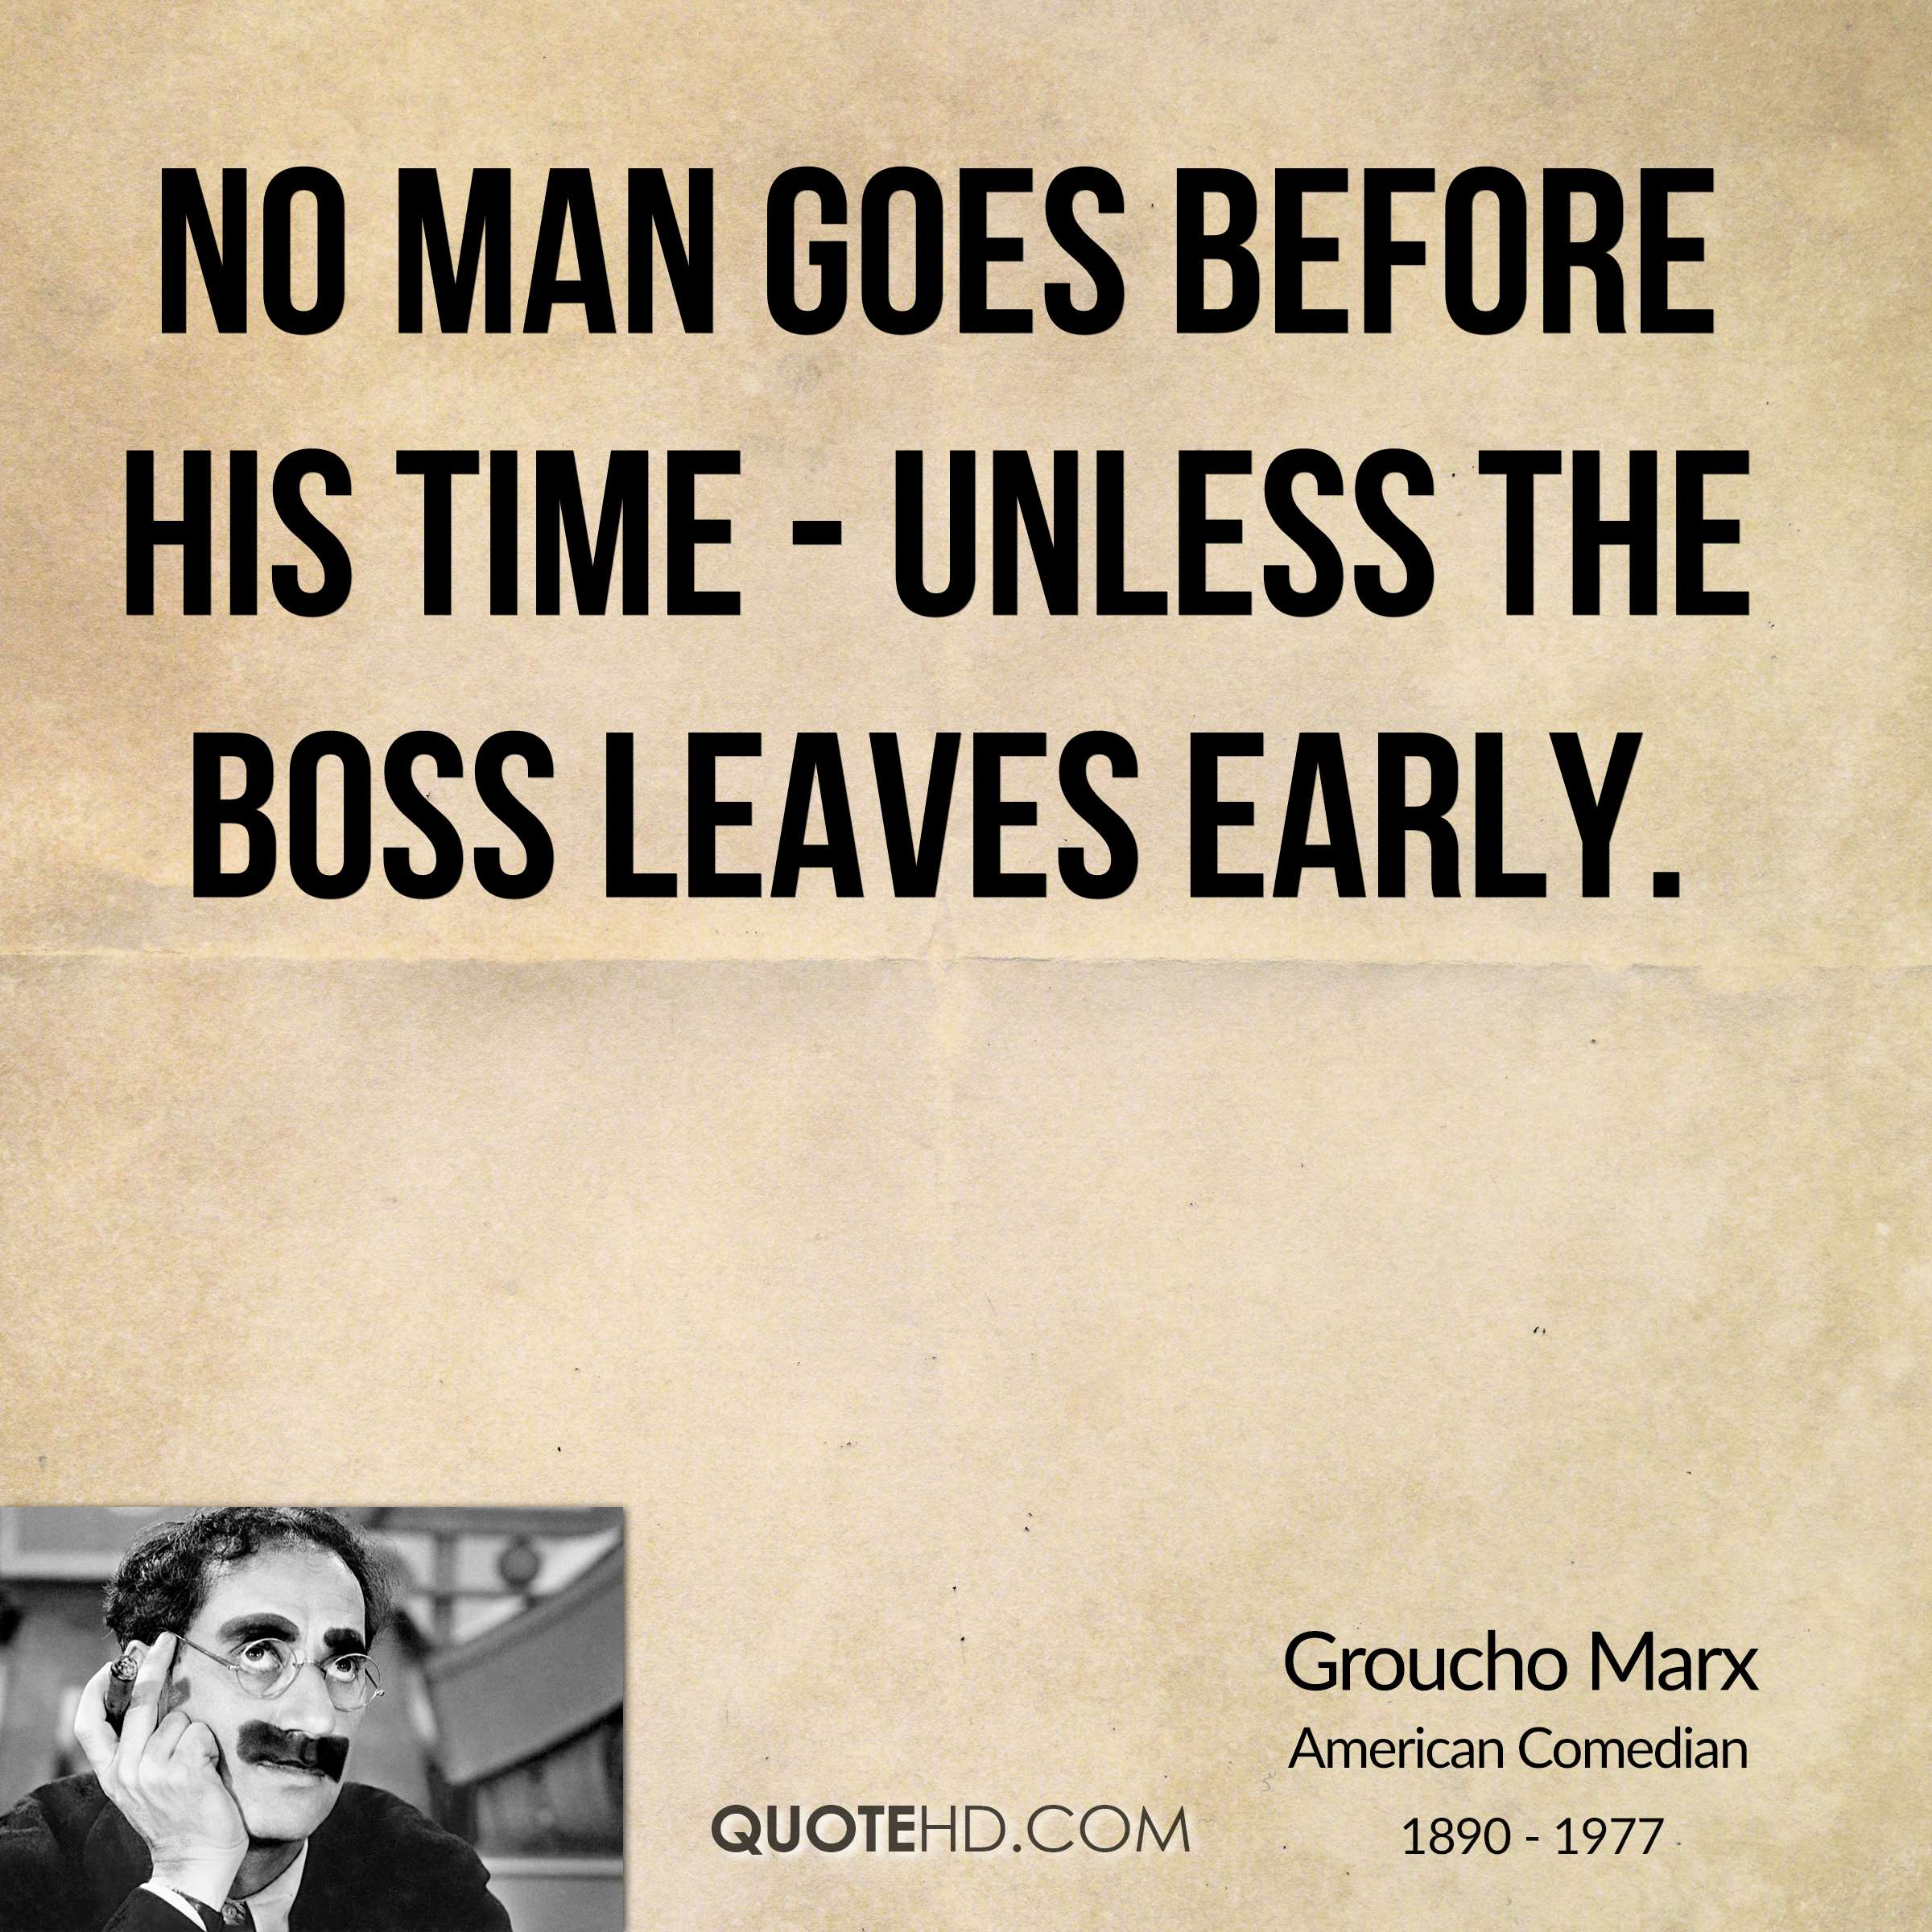 Funny Groucho Marx Quotes: Groucho Quotes Of All Time. QuotesGram